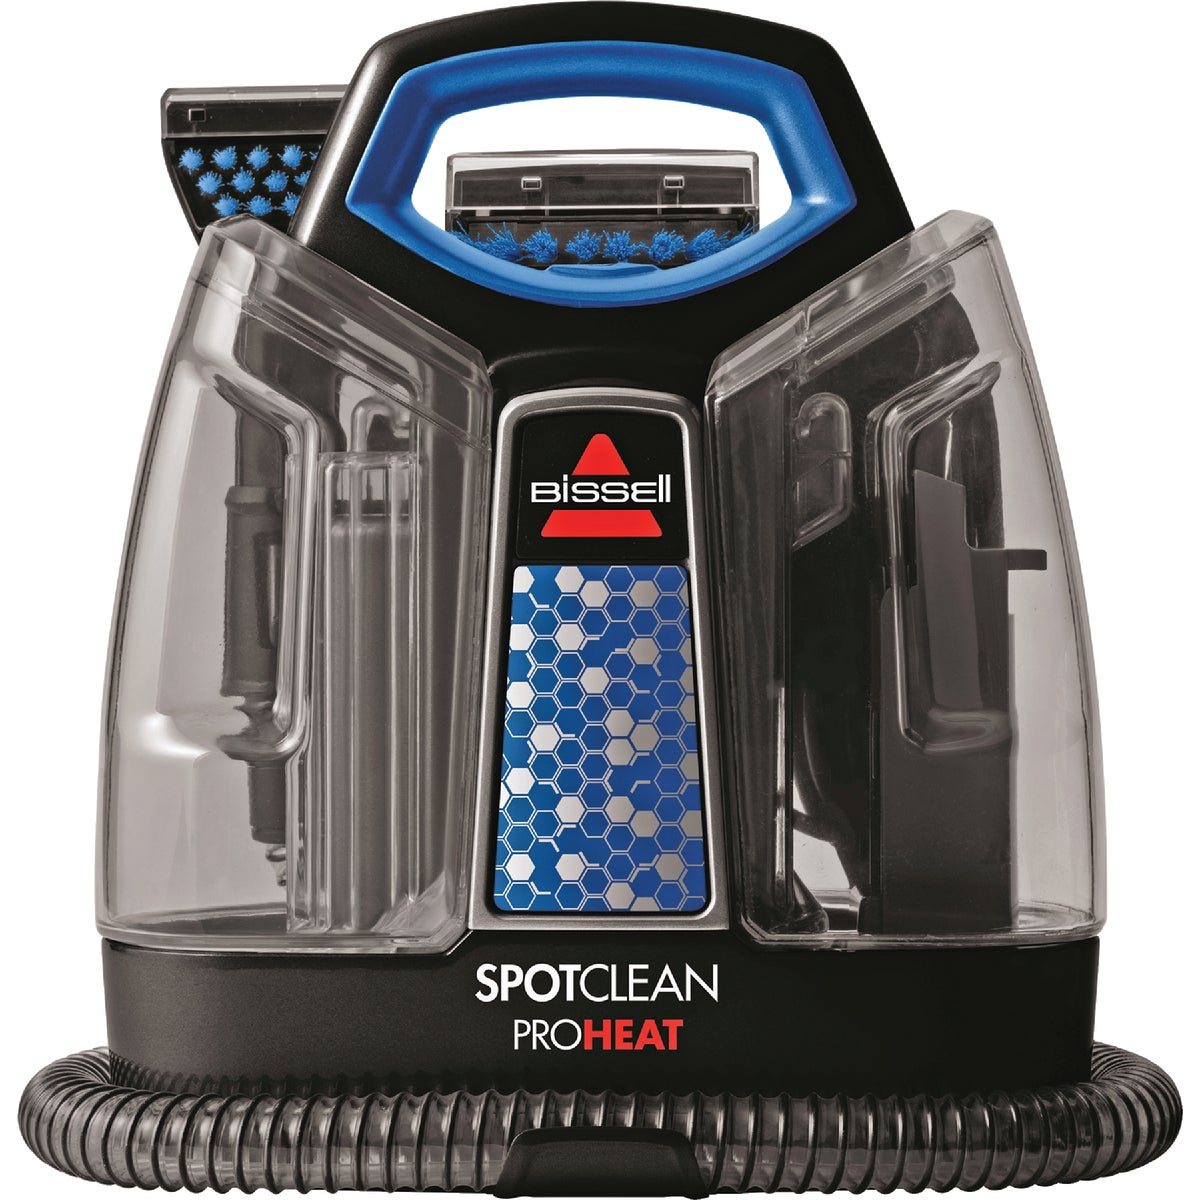 PORTABLE SPOT CLEAN - 5207 by Bissell Homecare Int